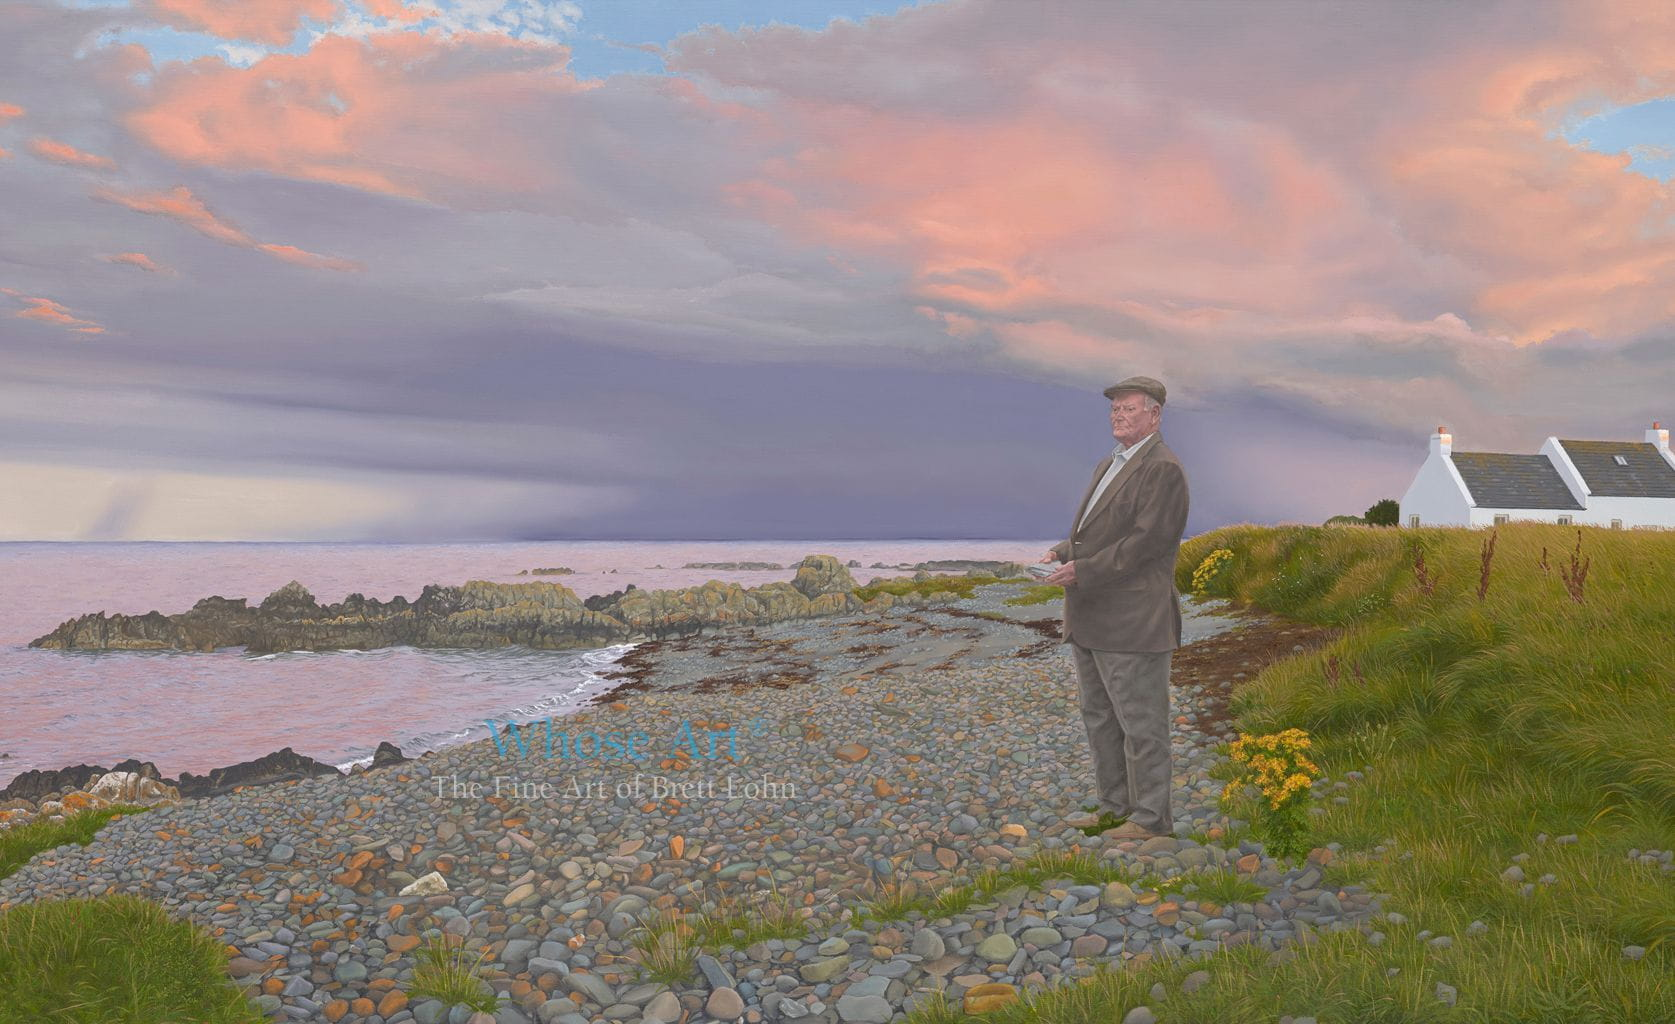 Art and wellbeing in a painting of a man standing on a beach with a stone in his hand. The sky is dark as the sun sets